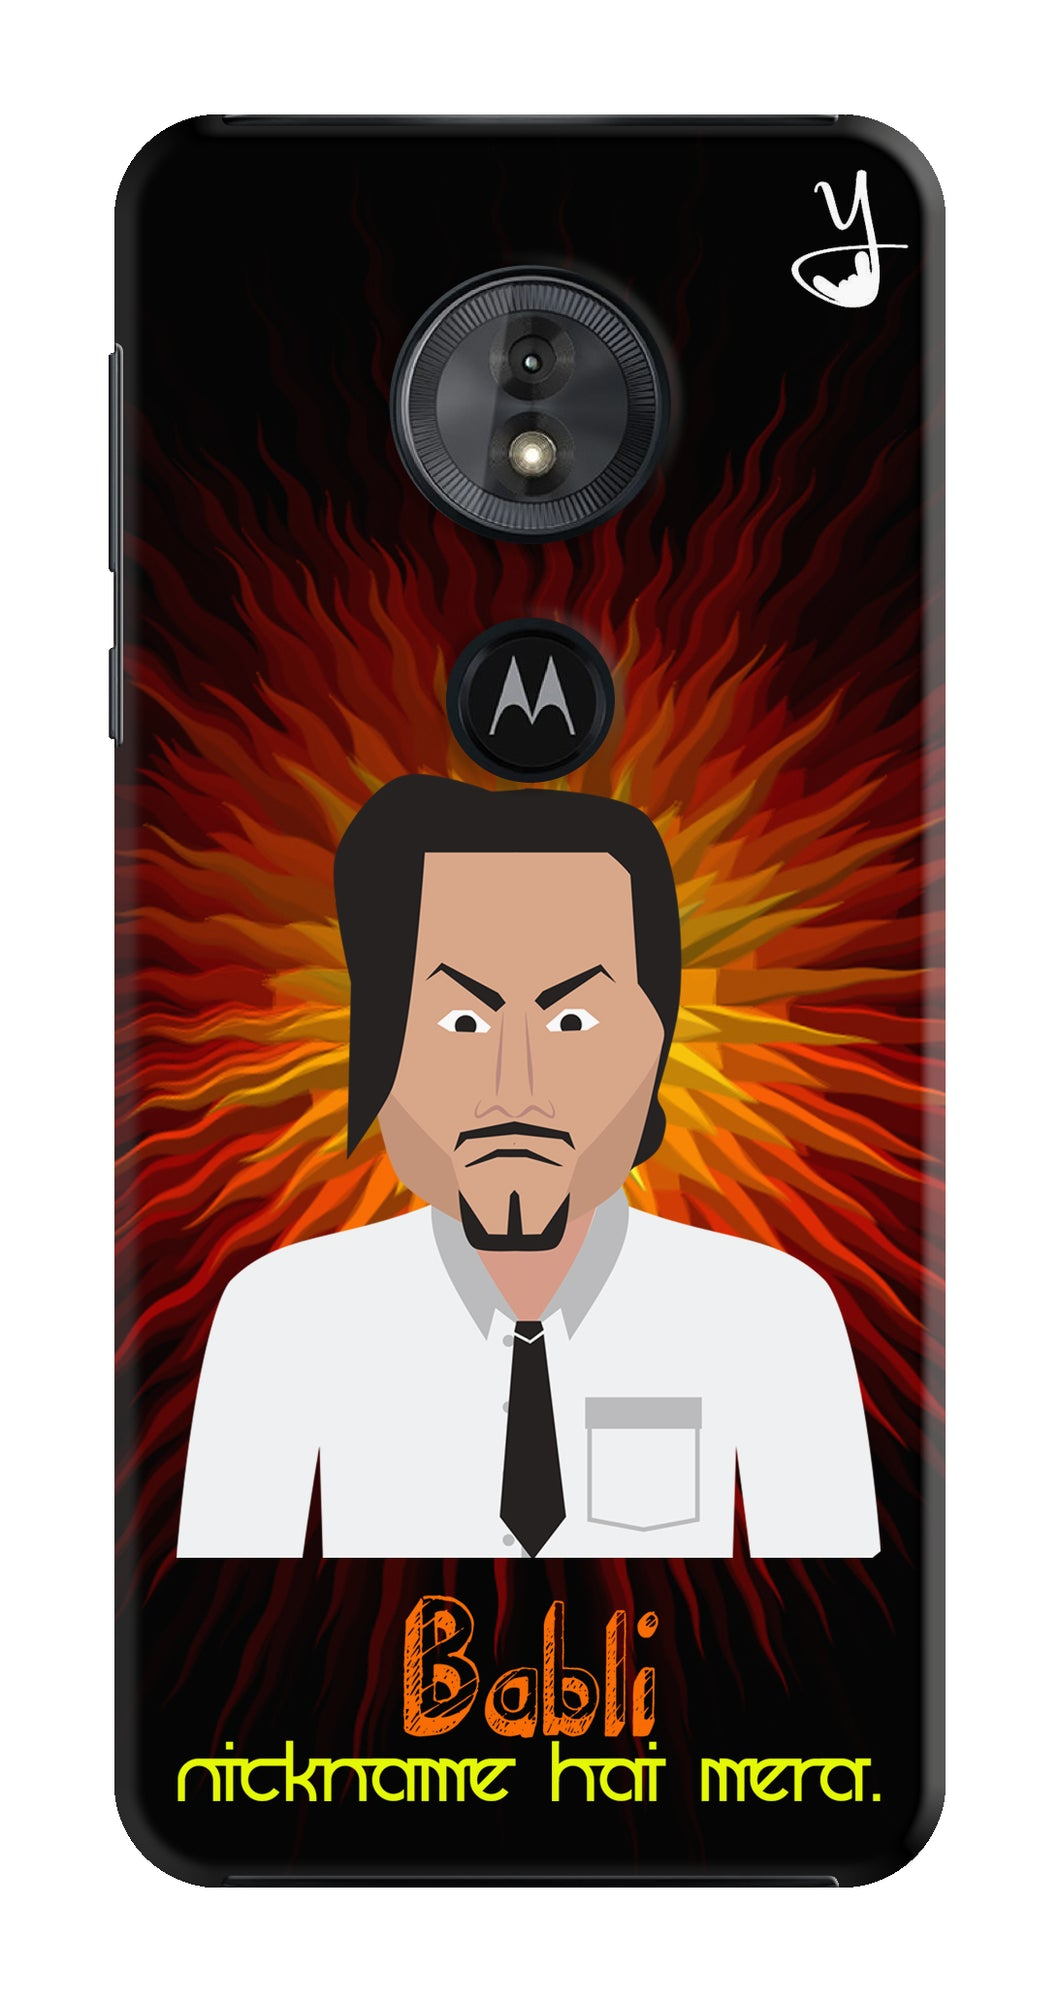 Angry Master Ji Edition for Motorola Moto G6 Play